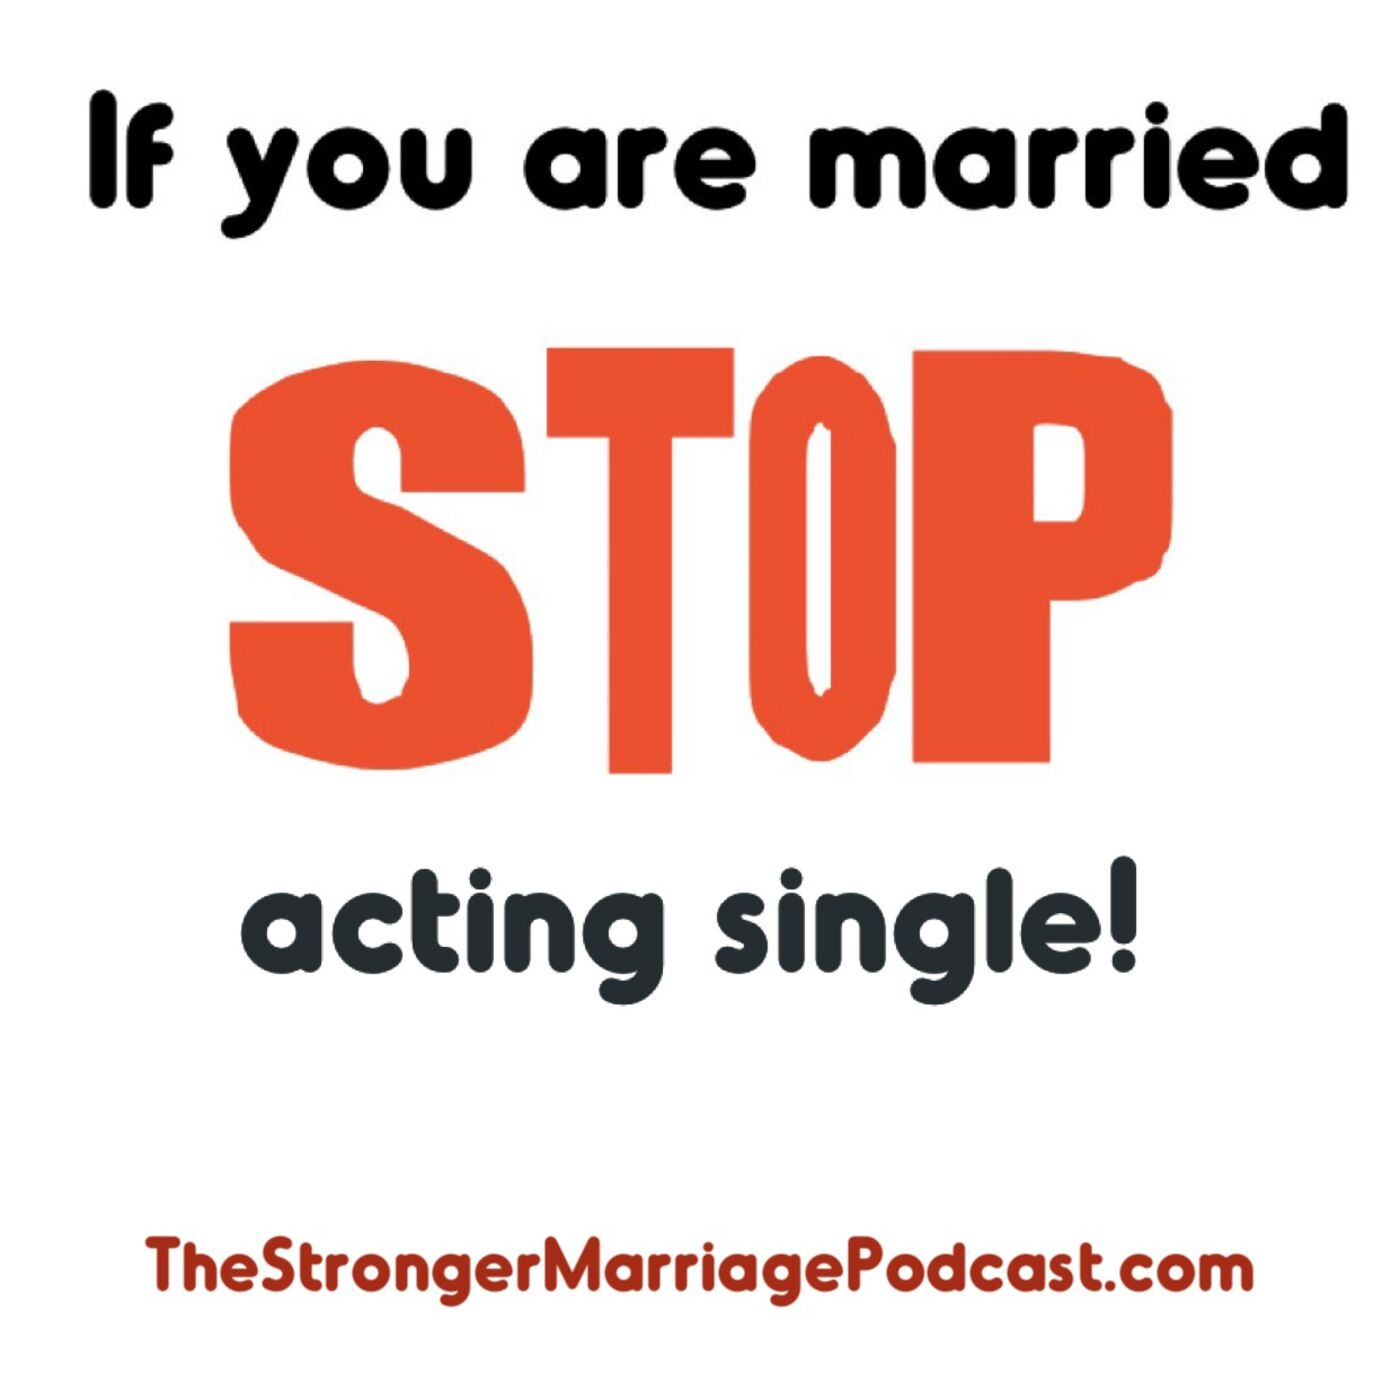 If You're Married STOP ACTING SINGLE